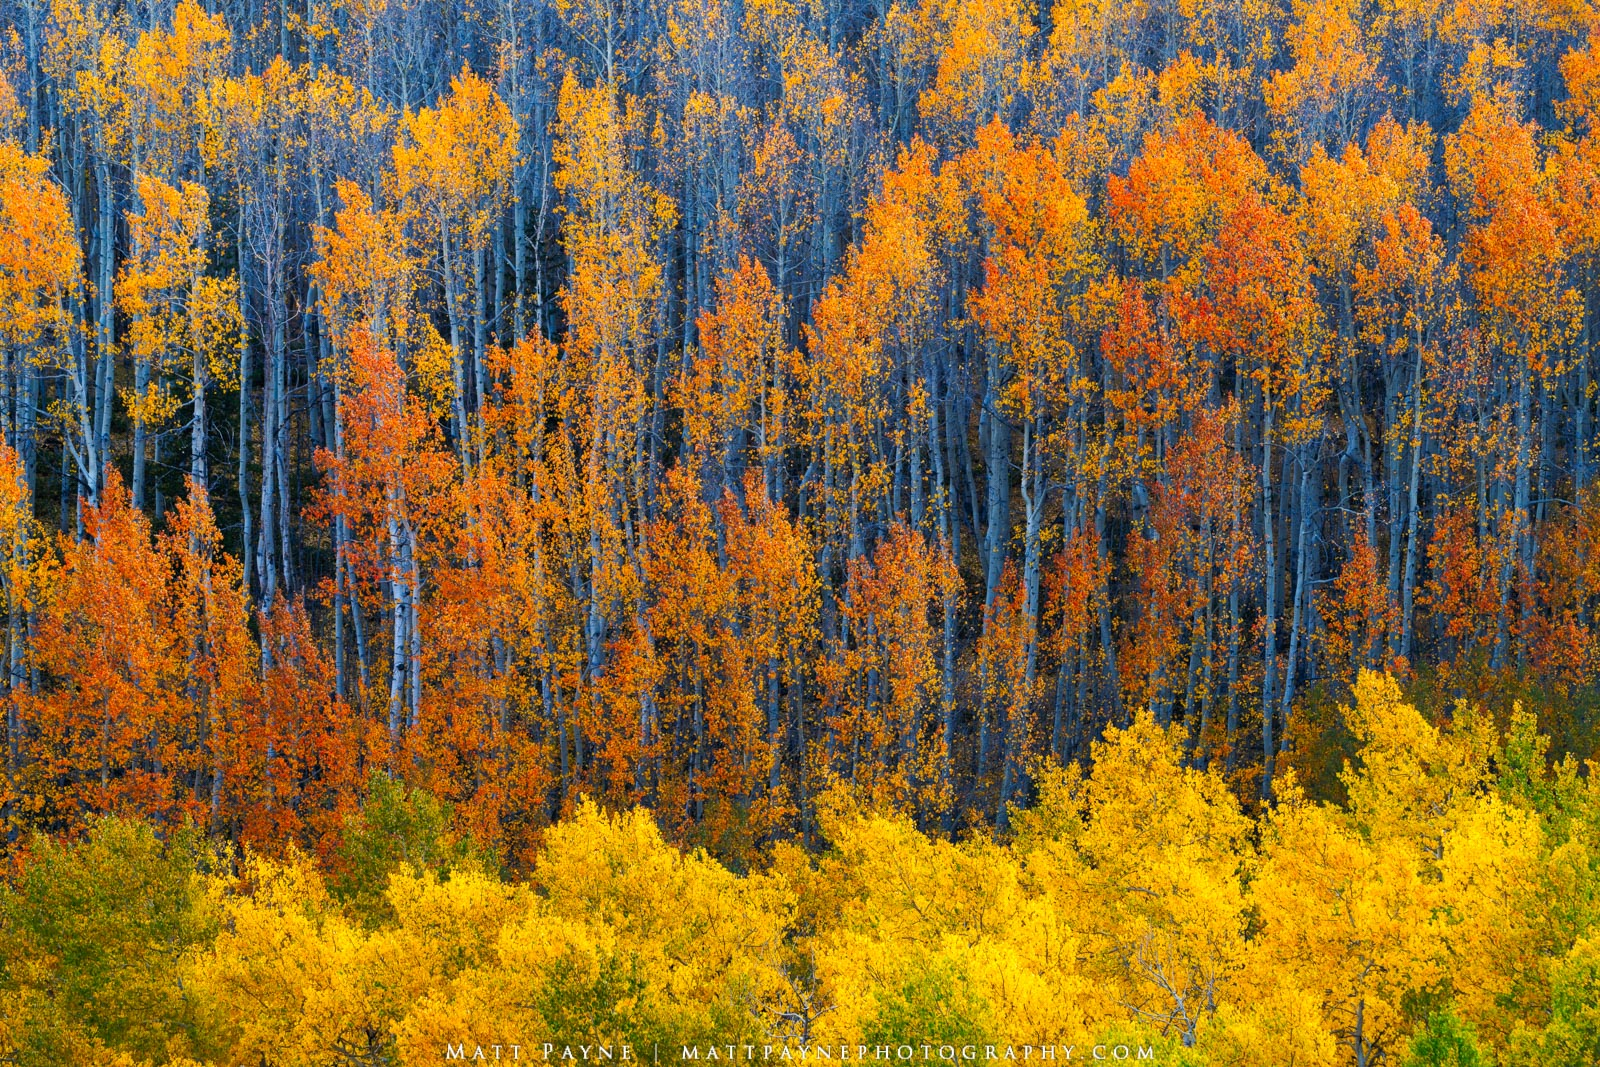 Autumn, Colorado, Fall, Fall Colors, Gold, Green, Landscape, Orange, Red, Yellow, aspen leaves, colorful, landscape photography, layers, photo